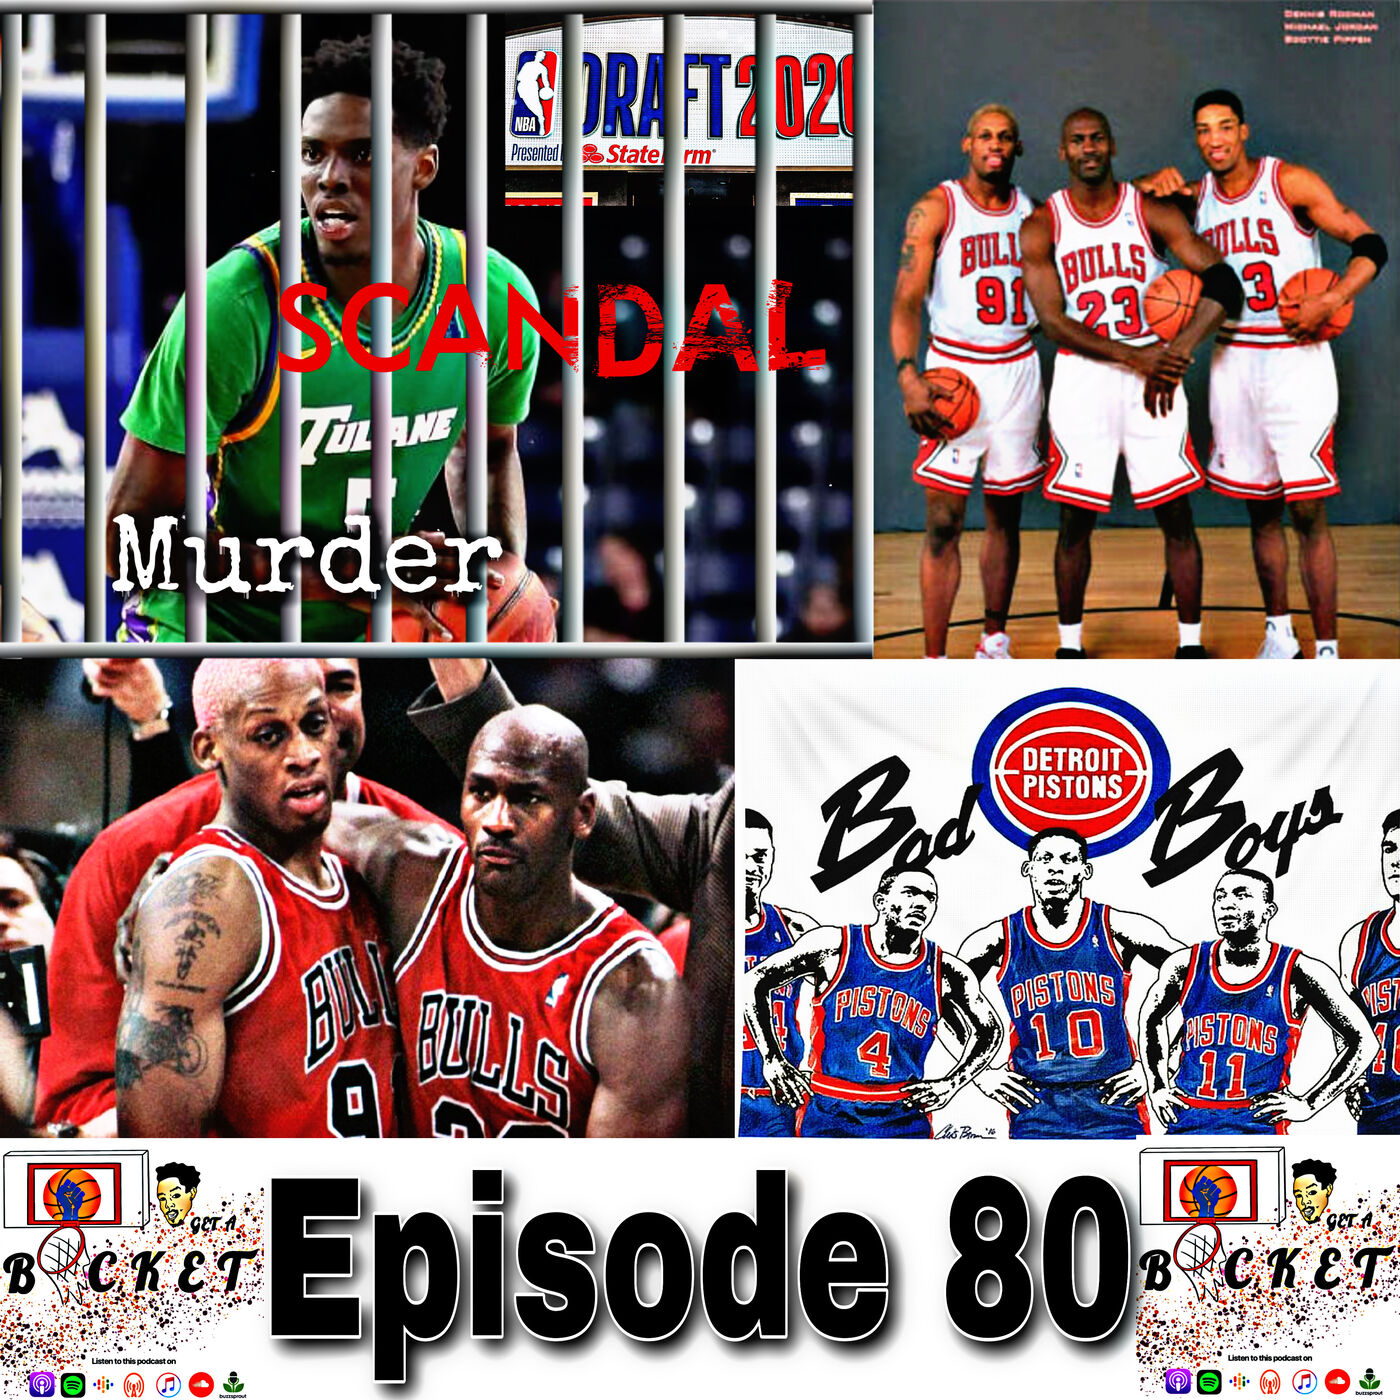 Episode 80: NBA Scandal